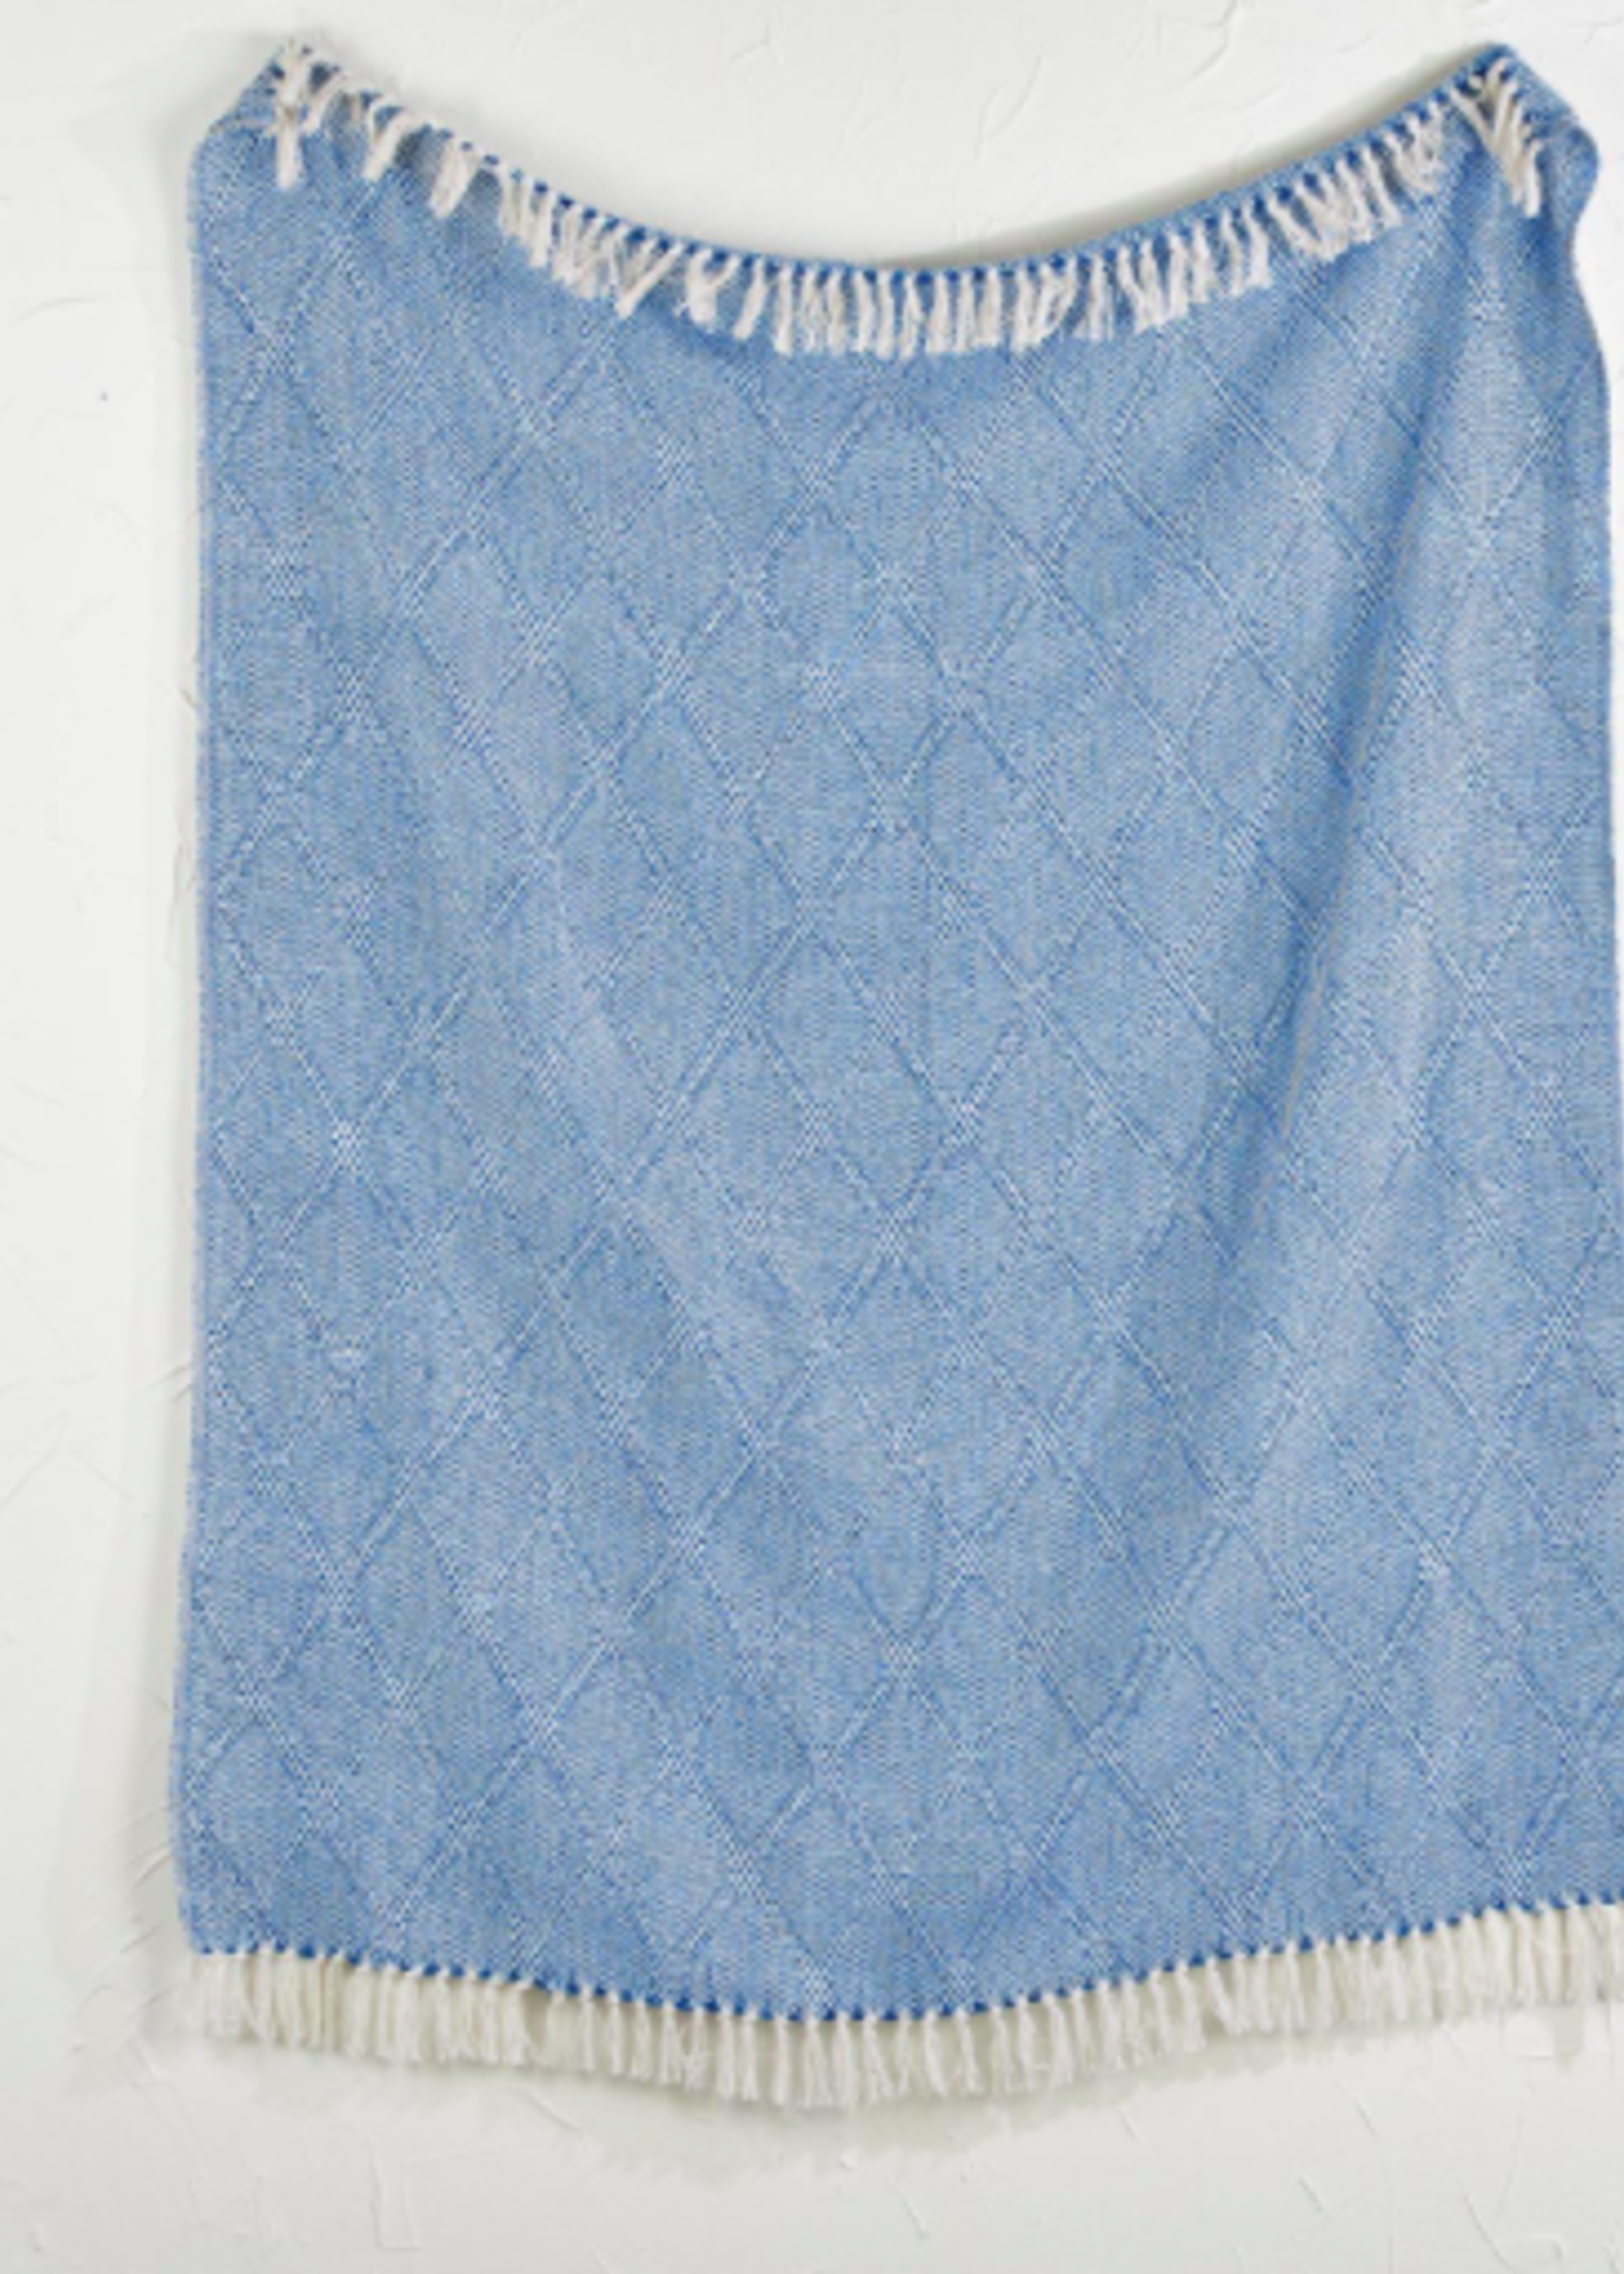 Blue & White Throw Blanket With Tassels